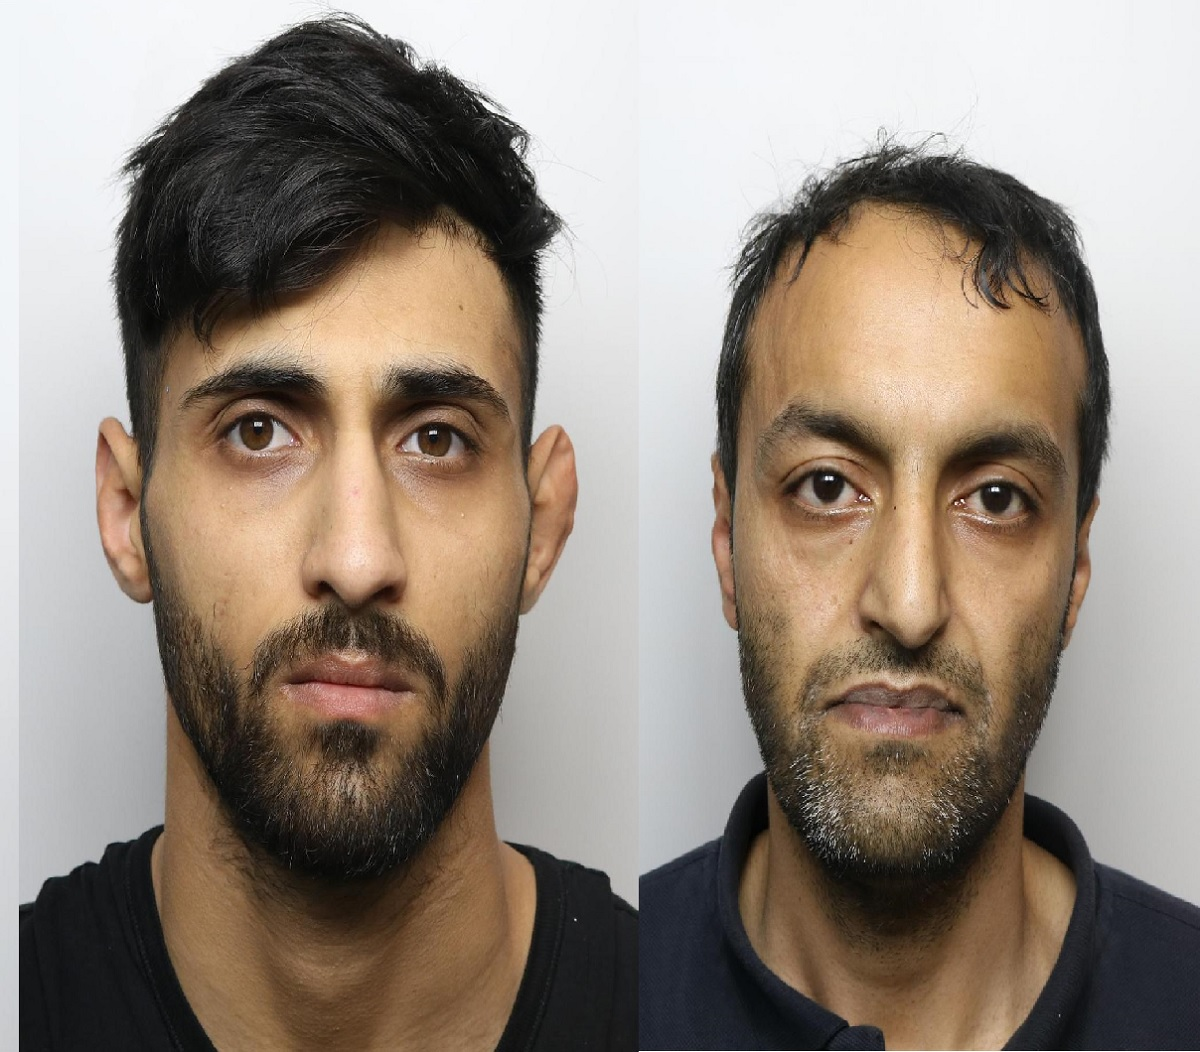 Mohammed Shaikh, who was jailed for four-and-a-half years and Imran Ali, who was jailed for five years and nine months